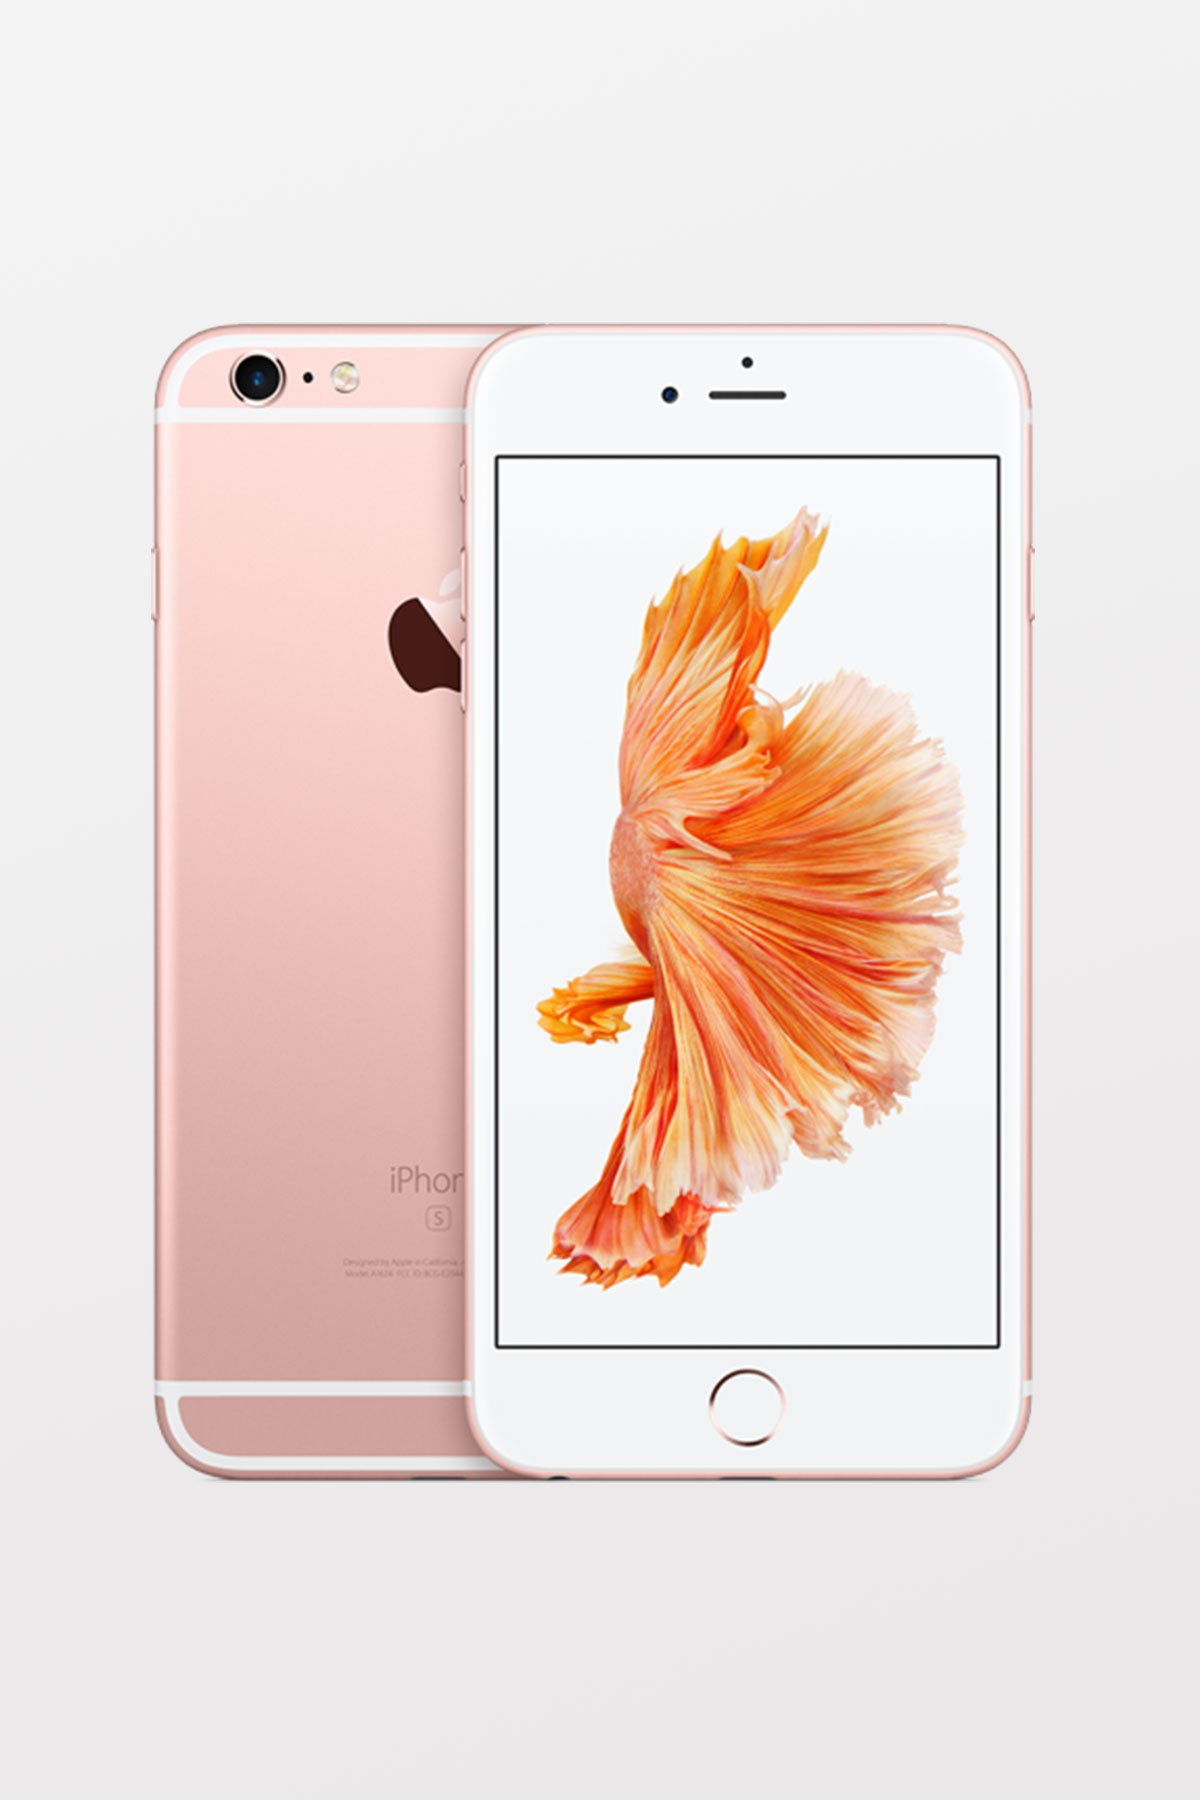 Apple iPhone 6S Plus 128GB - Rose Gold - Refurbished